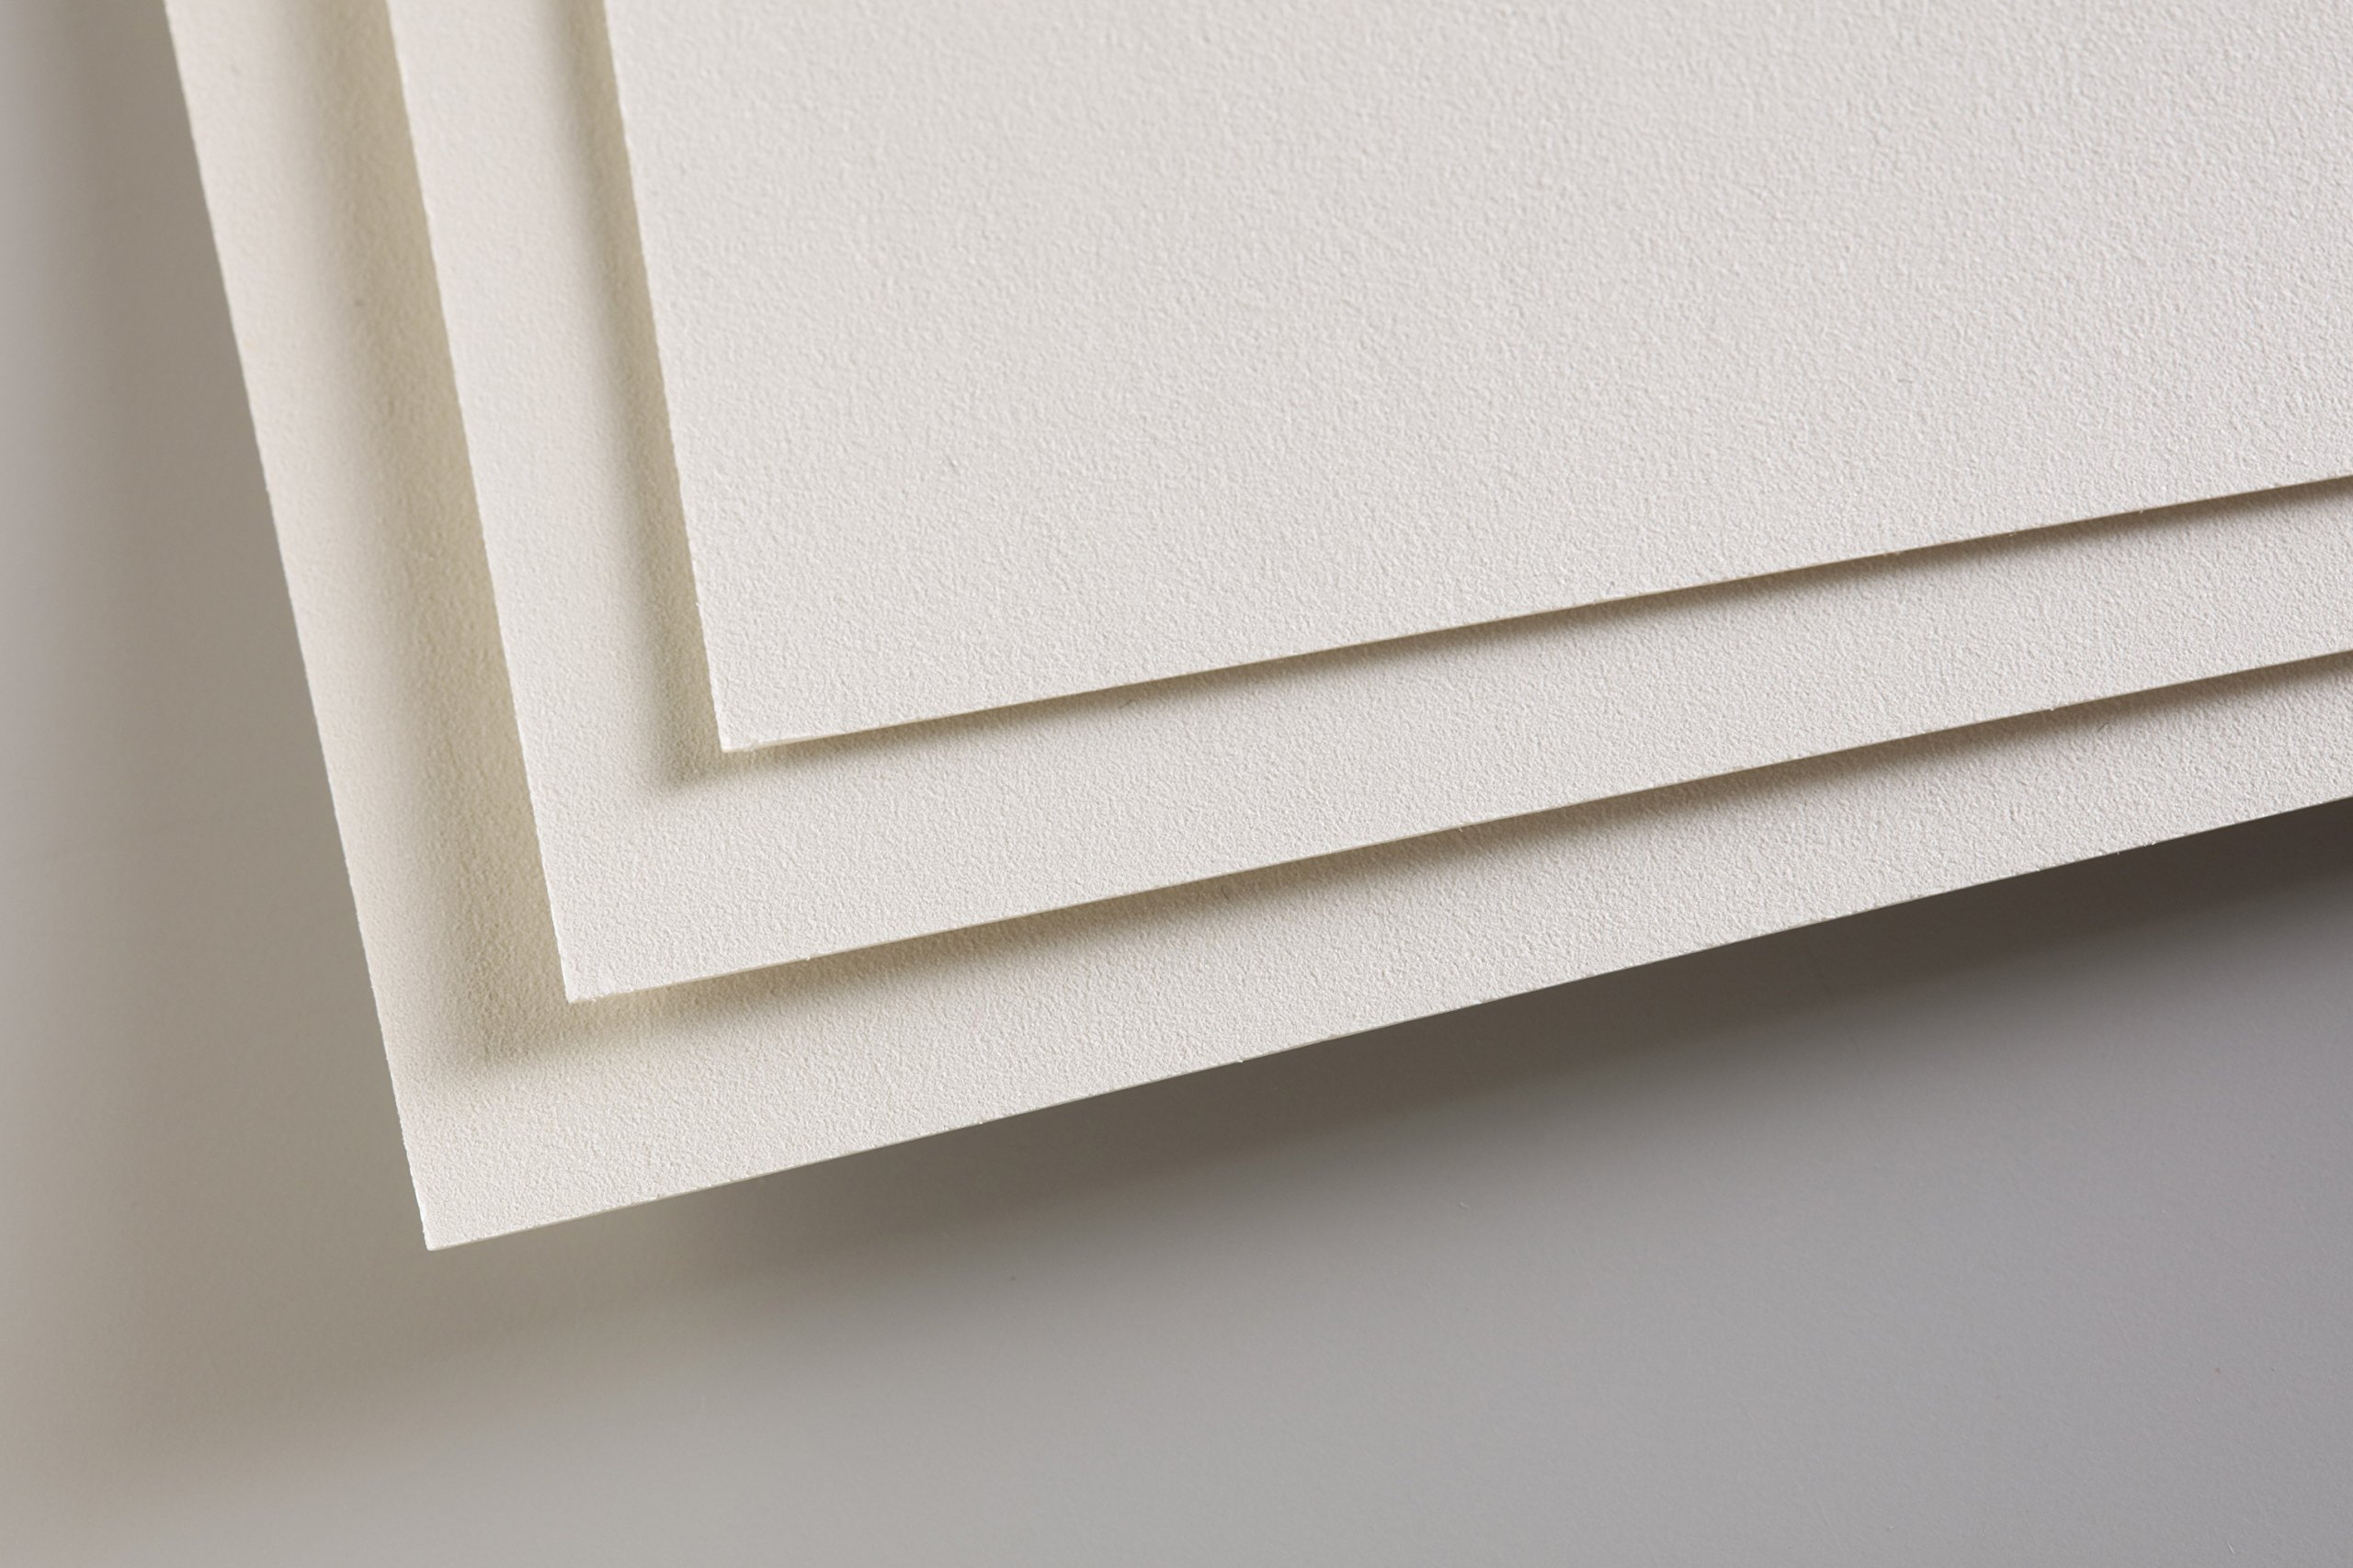 Pastelmat Card for Pastel - 19-1/2 x 25-1/2 Inch Sheet - Light Grey by Clairefontaine